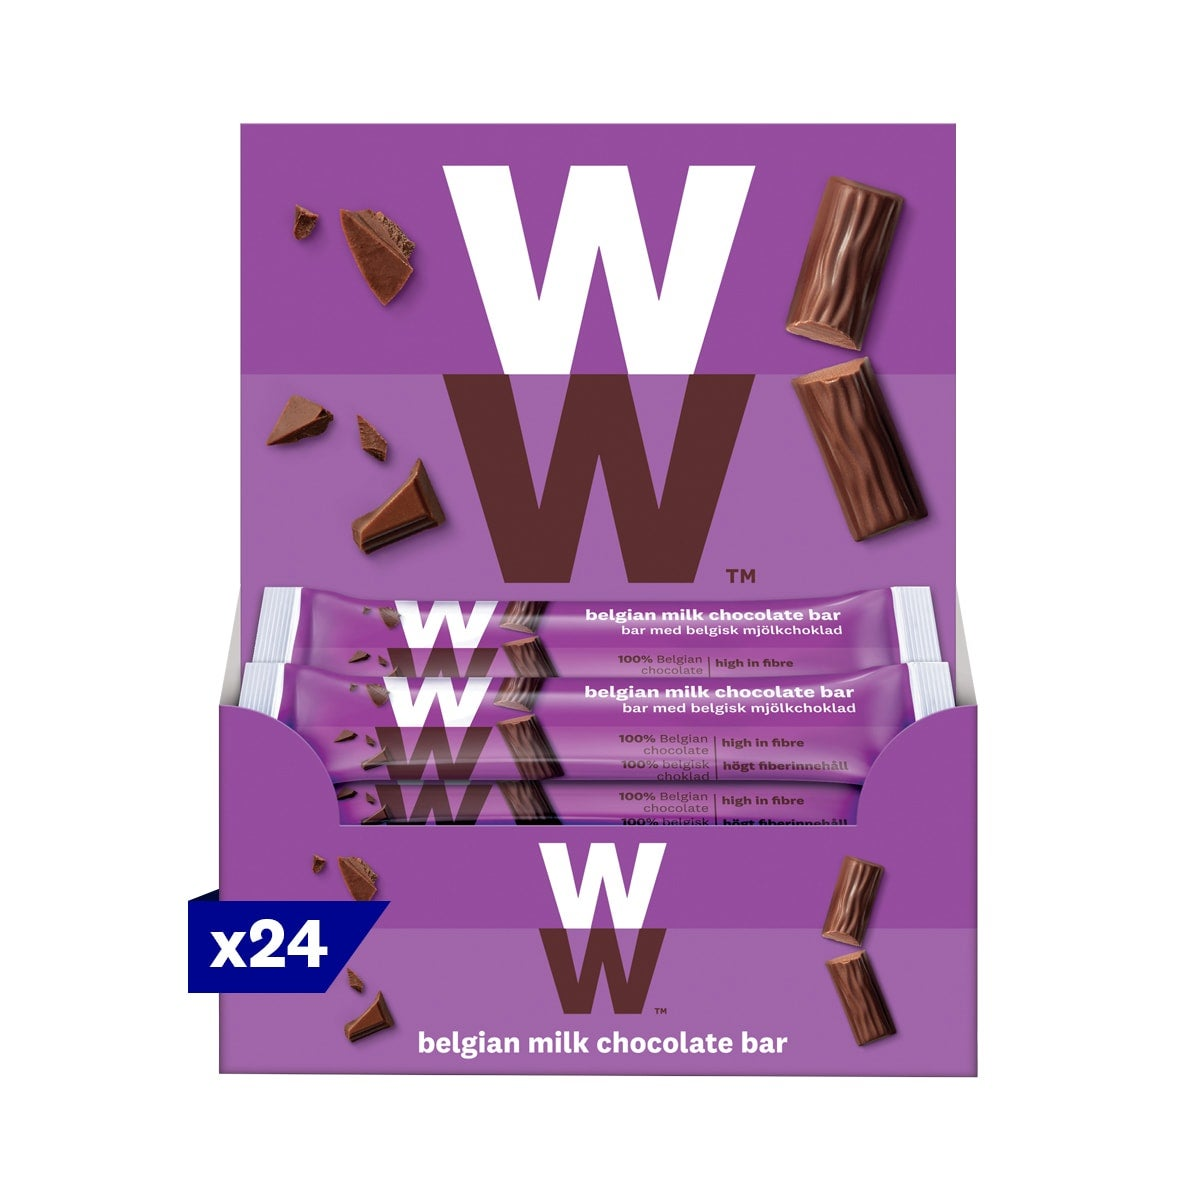 Box of 24, WW Belgian Milk Chocolate Bar, smooth and creamy milk chocolate, 3 SmartPoints values, suitable for vegetarians, gluten free